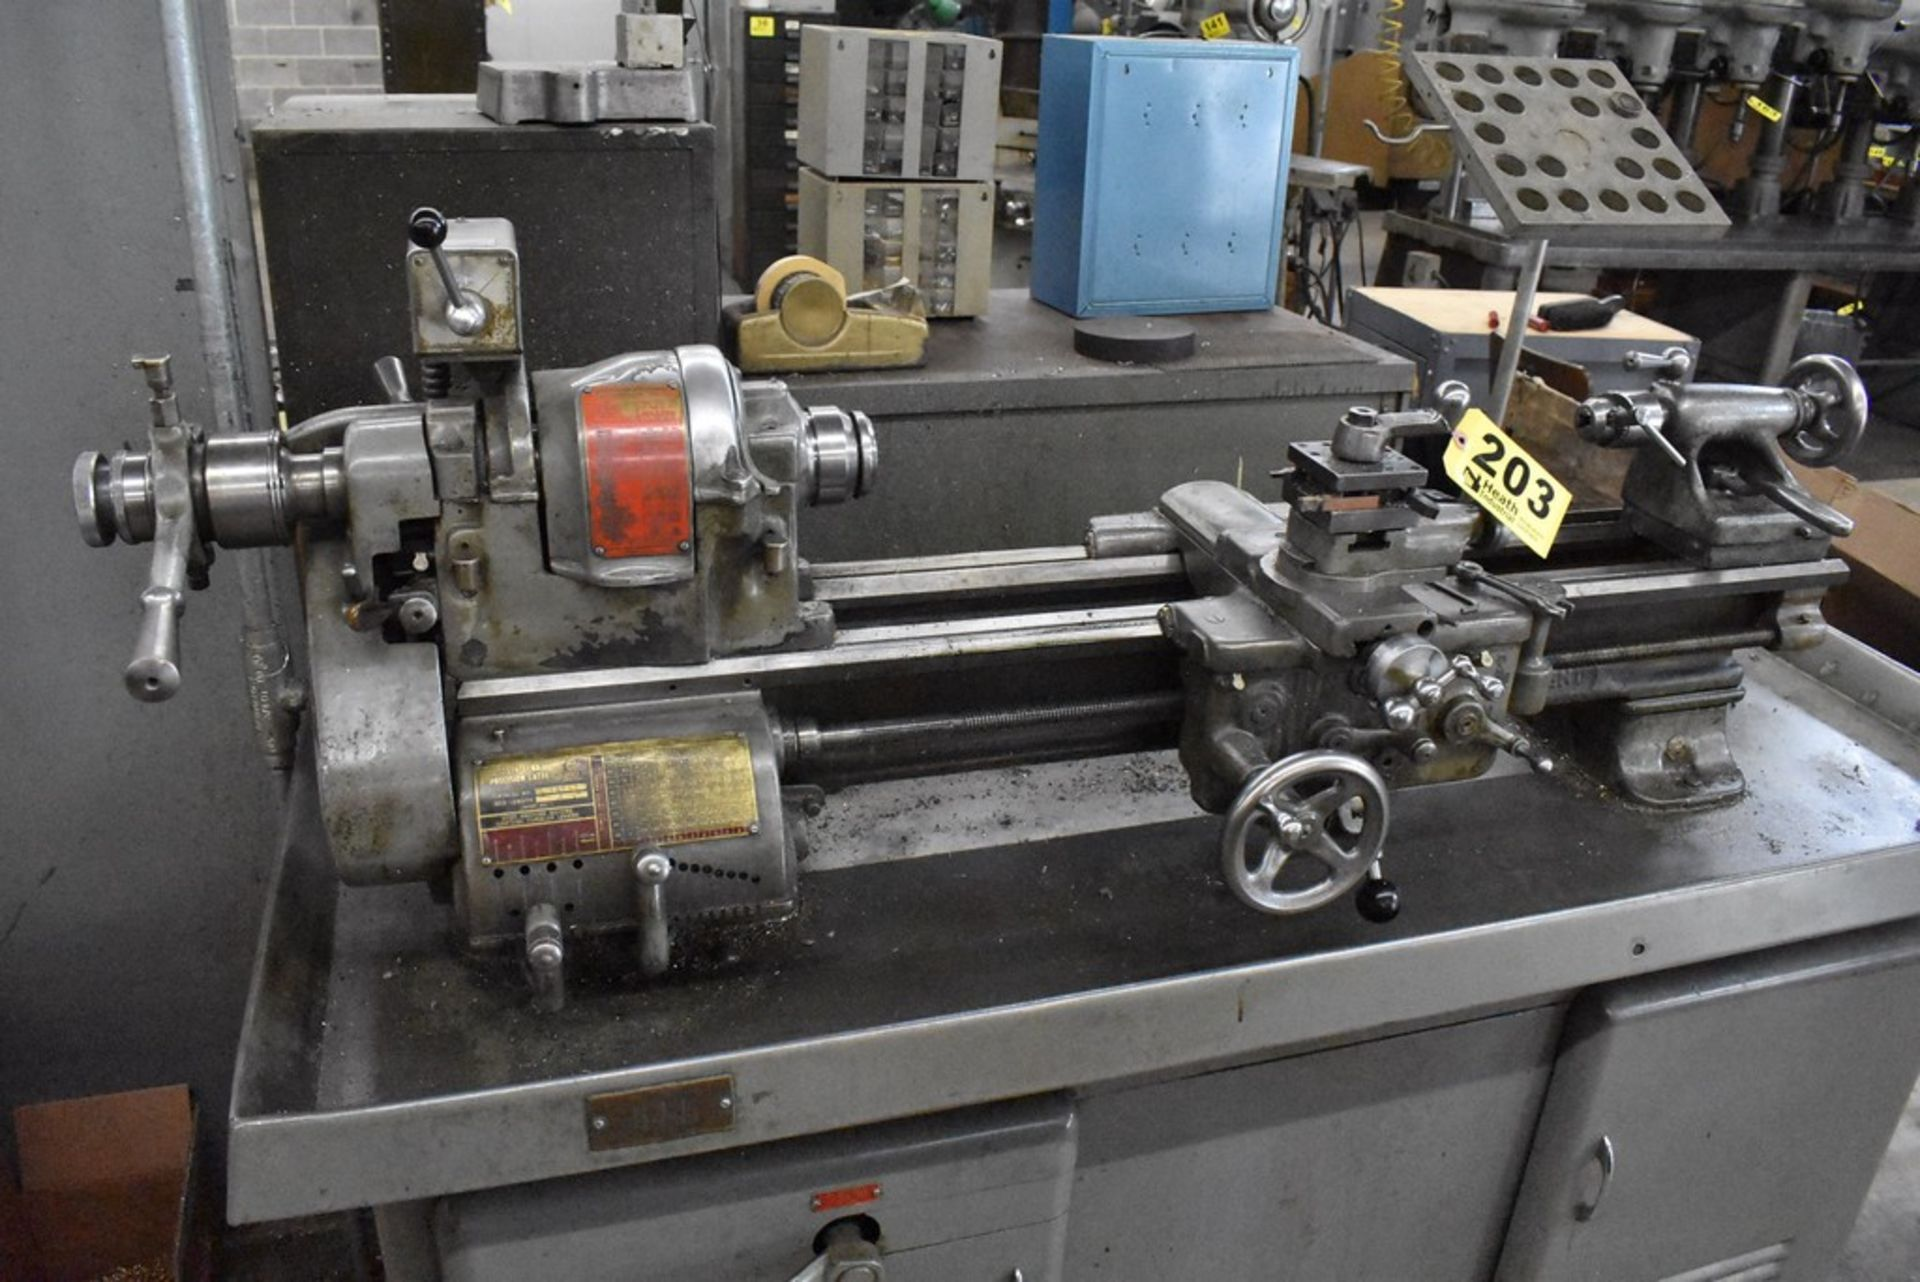 """SOUTH BEND 10""""X30"""" CABINET BASE TOOL ROOM LATHE, S/N 16711RKX12, WITH COLLET CLOSER, 4-WAY TOOL - Image 6 of 13"""